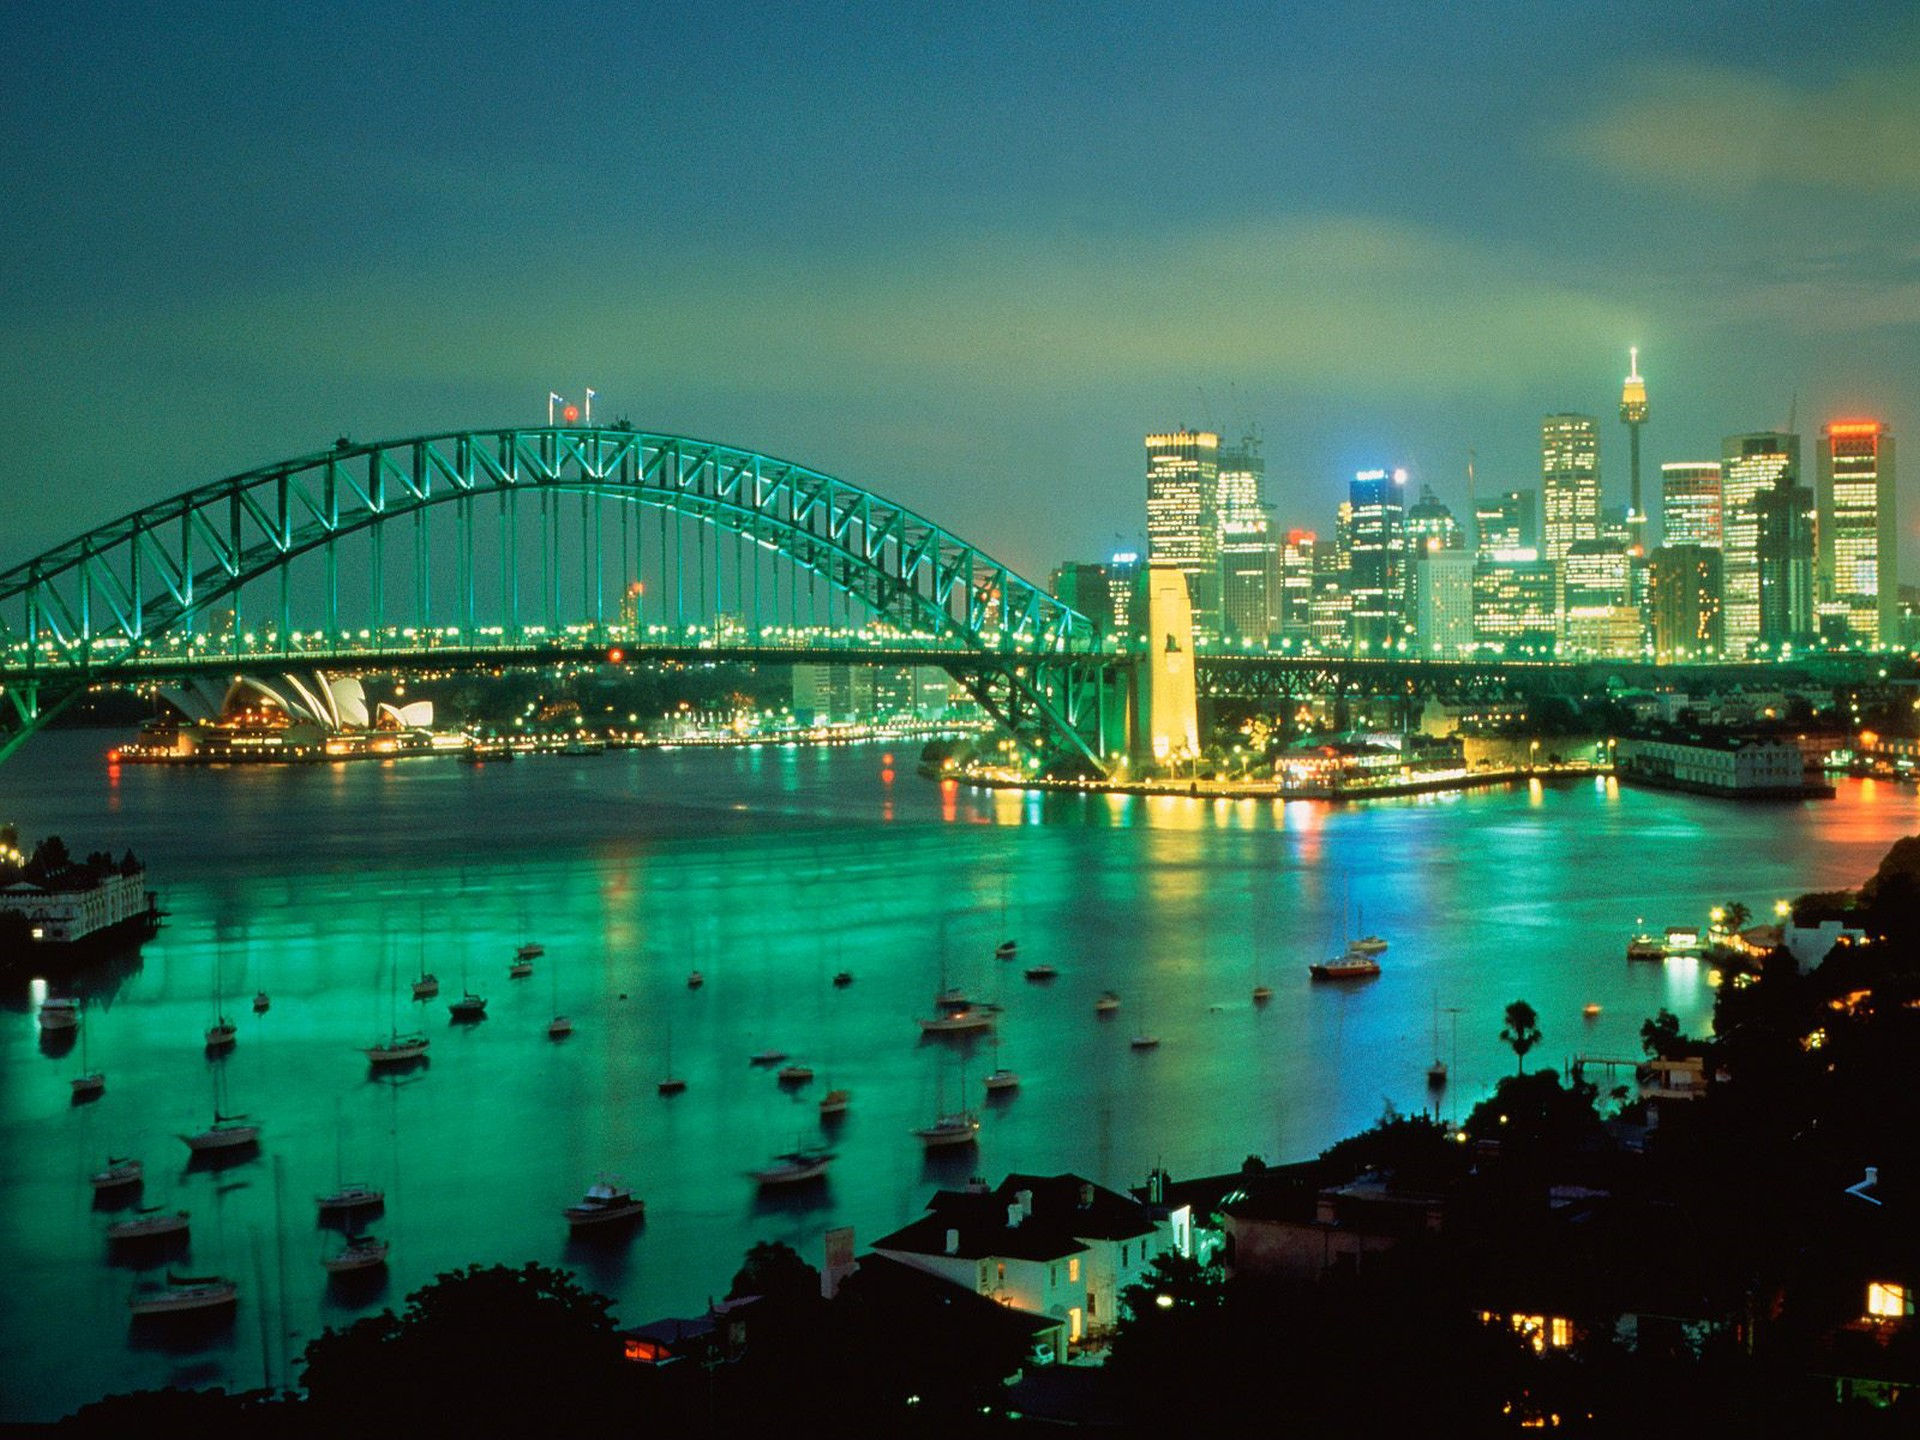 Image - Australia Nature 1920x1440 HD Wallpapers Pack 2-7.jpg Sydney Harbor at Dusk Australia.jpg | People Don't Have to Be Anything Else Wiki | FANDOM ...